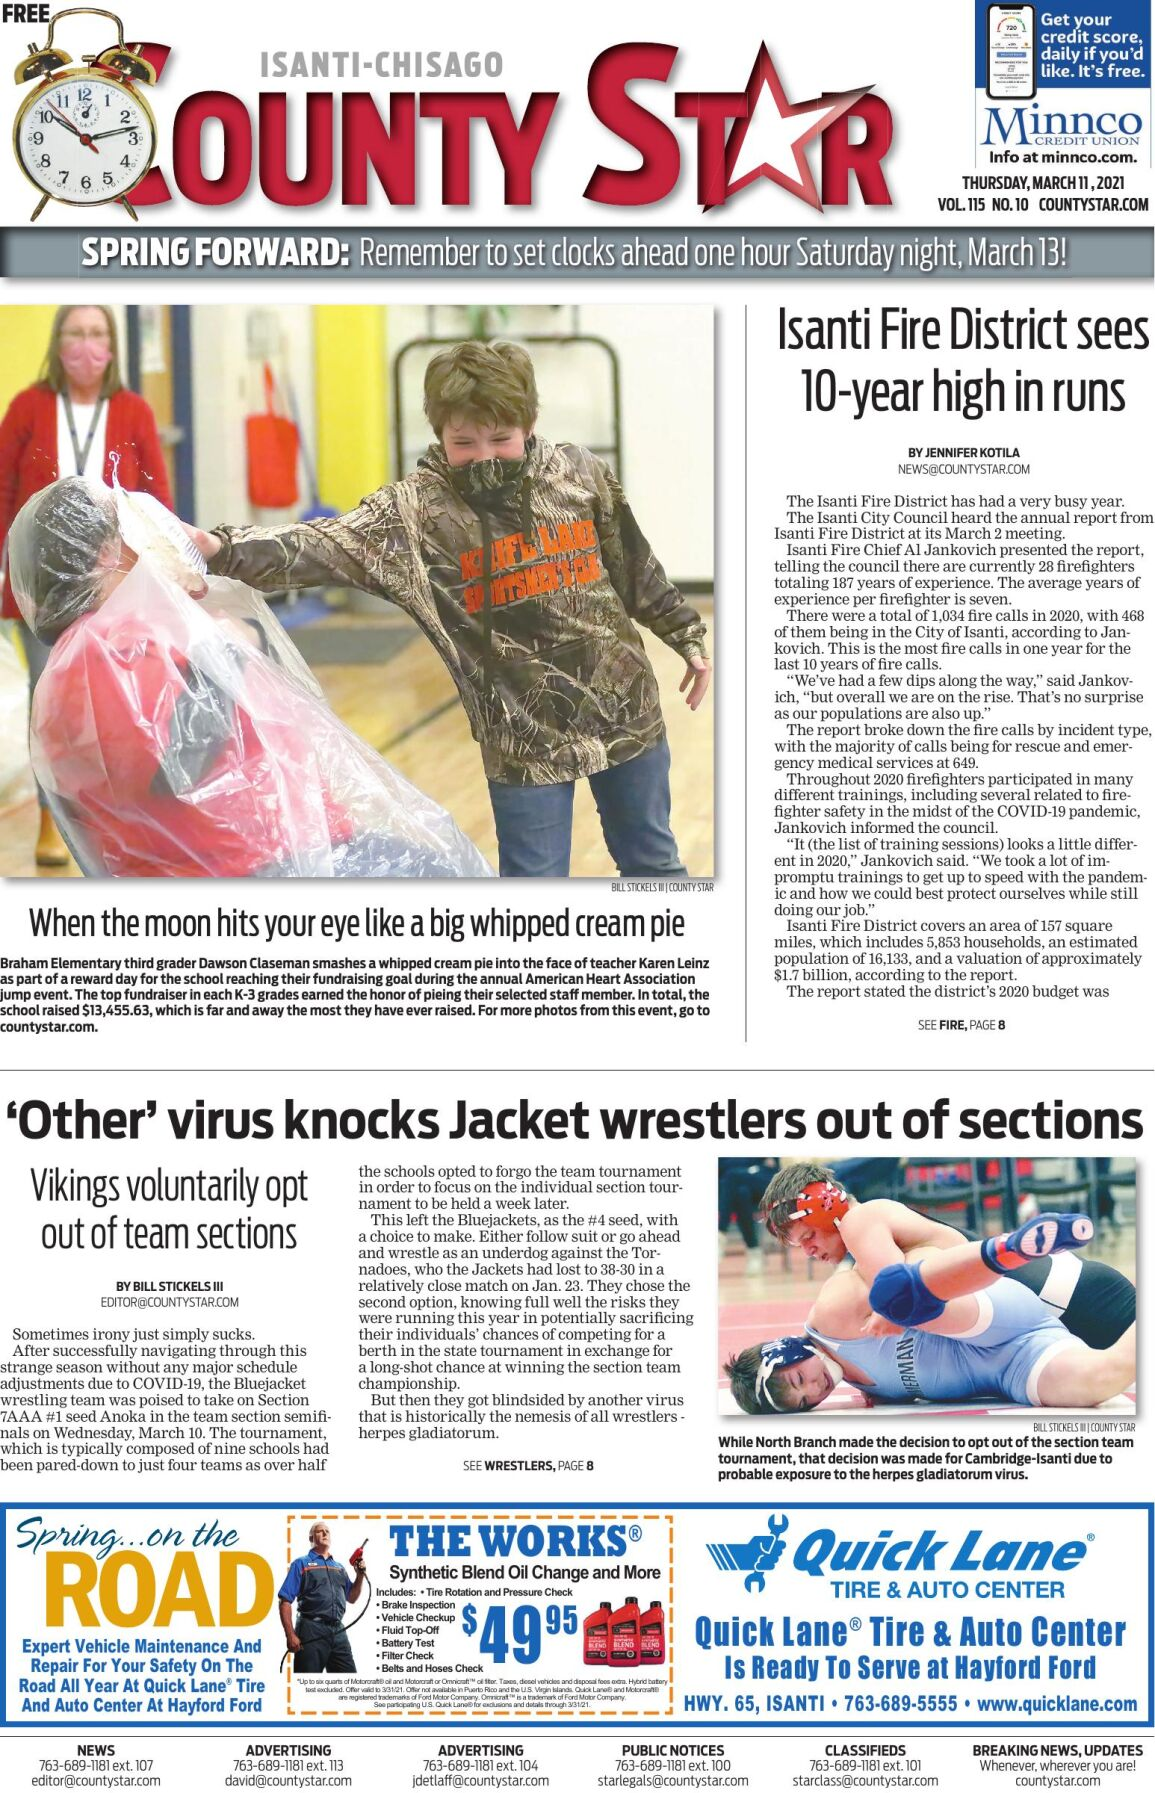 Isanti-Chisago County Star March 11, 2021 e-edition